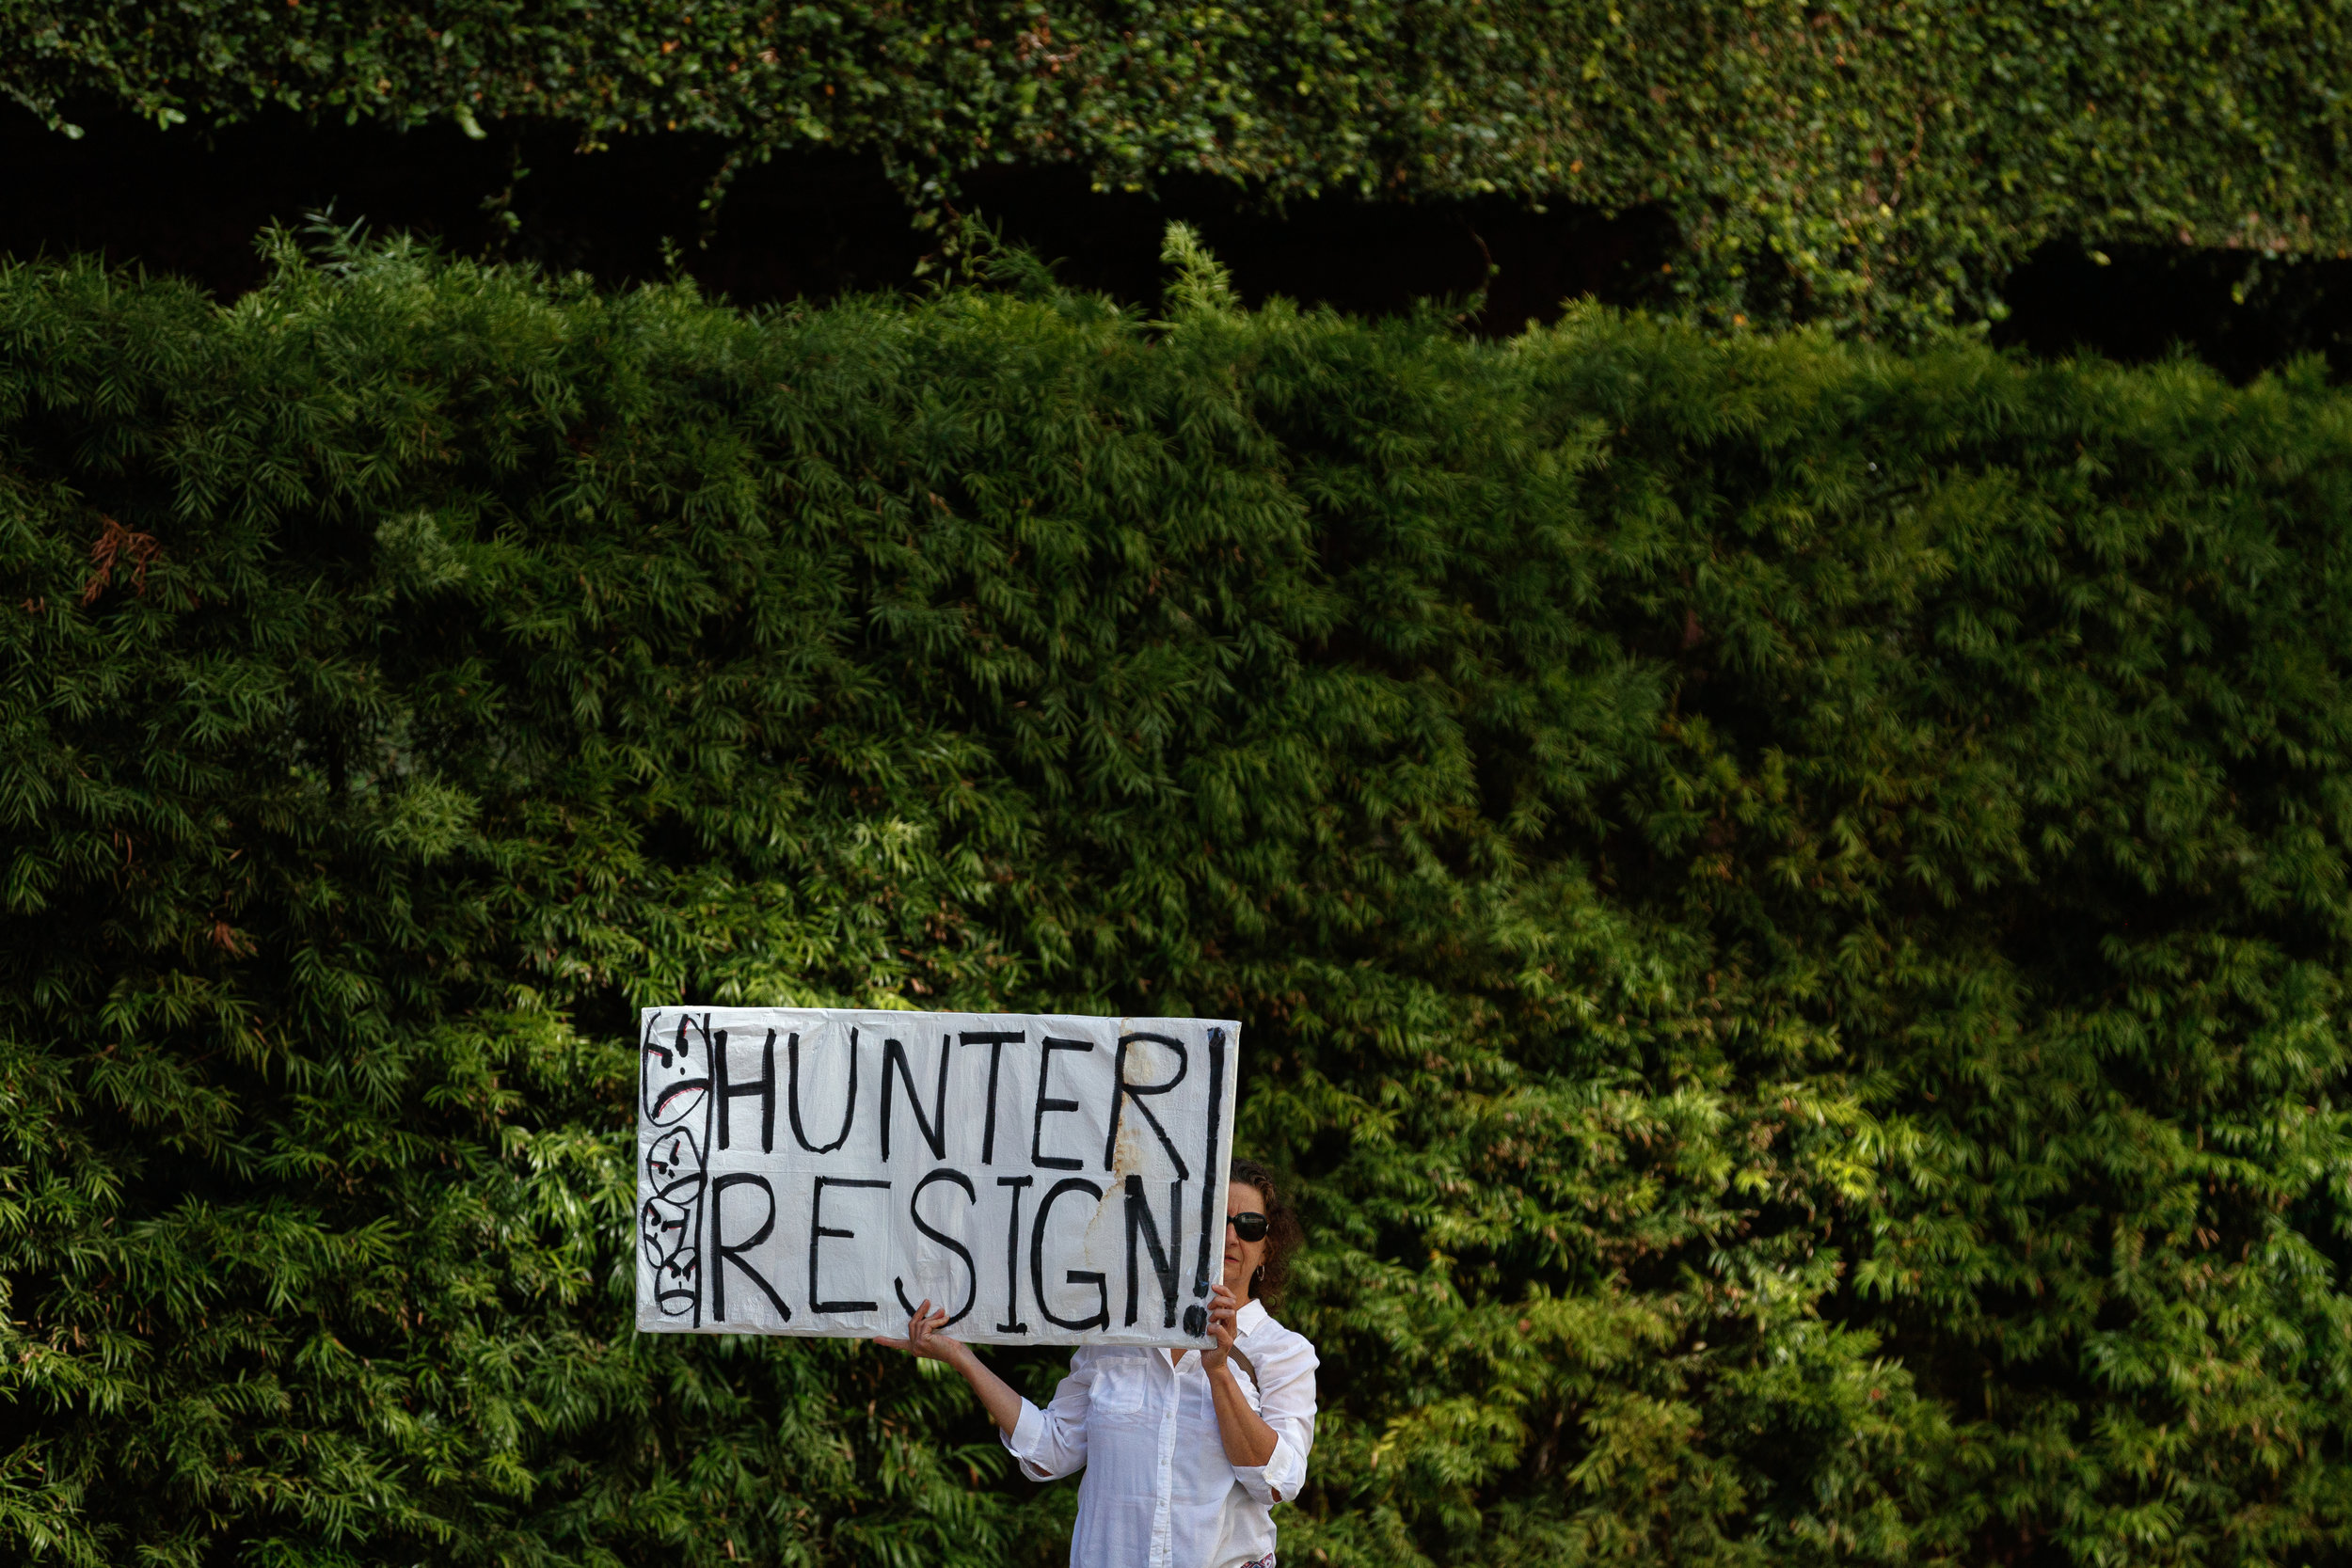 A protestor holds a sign outside the U.S. District Court for the Southern District of California while waiting for Rep. Duncan Hunter (R-CA) to arrive for a hearing on July 1, 2019 in San Diego, California. Hunter is facing a federal criminal trial for 60 felony charges that relate to spending campaign money on family vacations, bills, and personal expenses. Hunter's wife, Margaret, pleaded guilty to one count of felony conspiracy in June and is cooperating with prosecutors. A trial date is set for September 10, 2019.